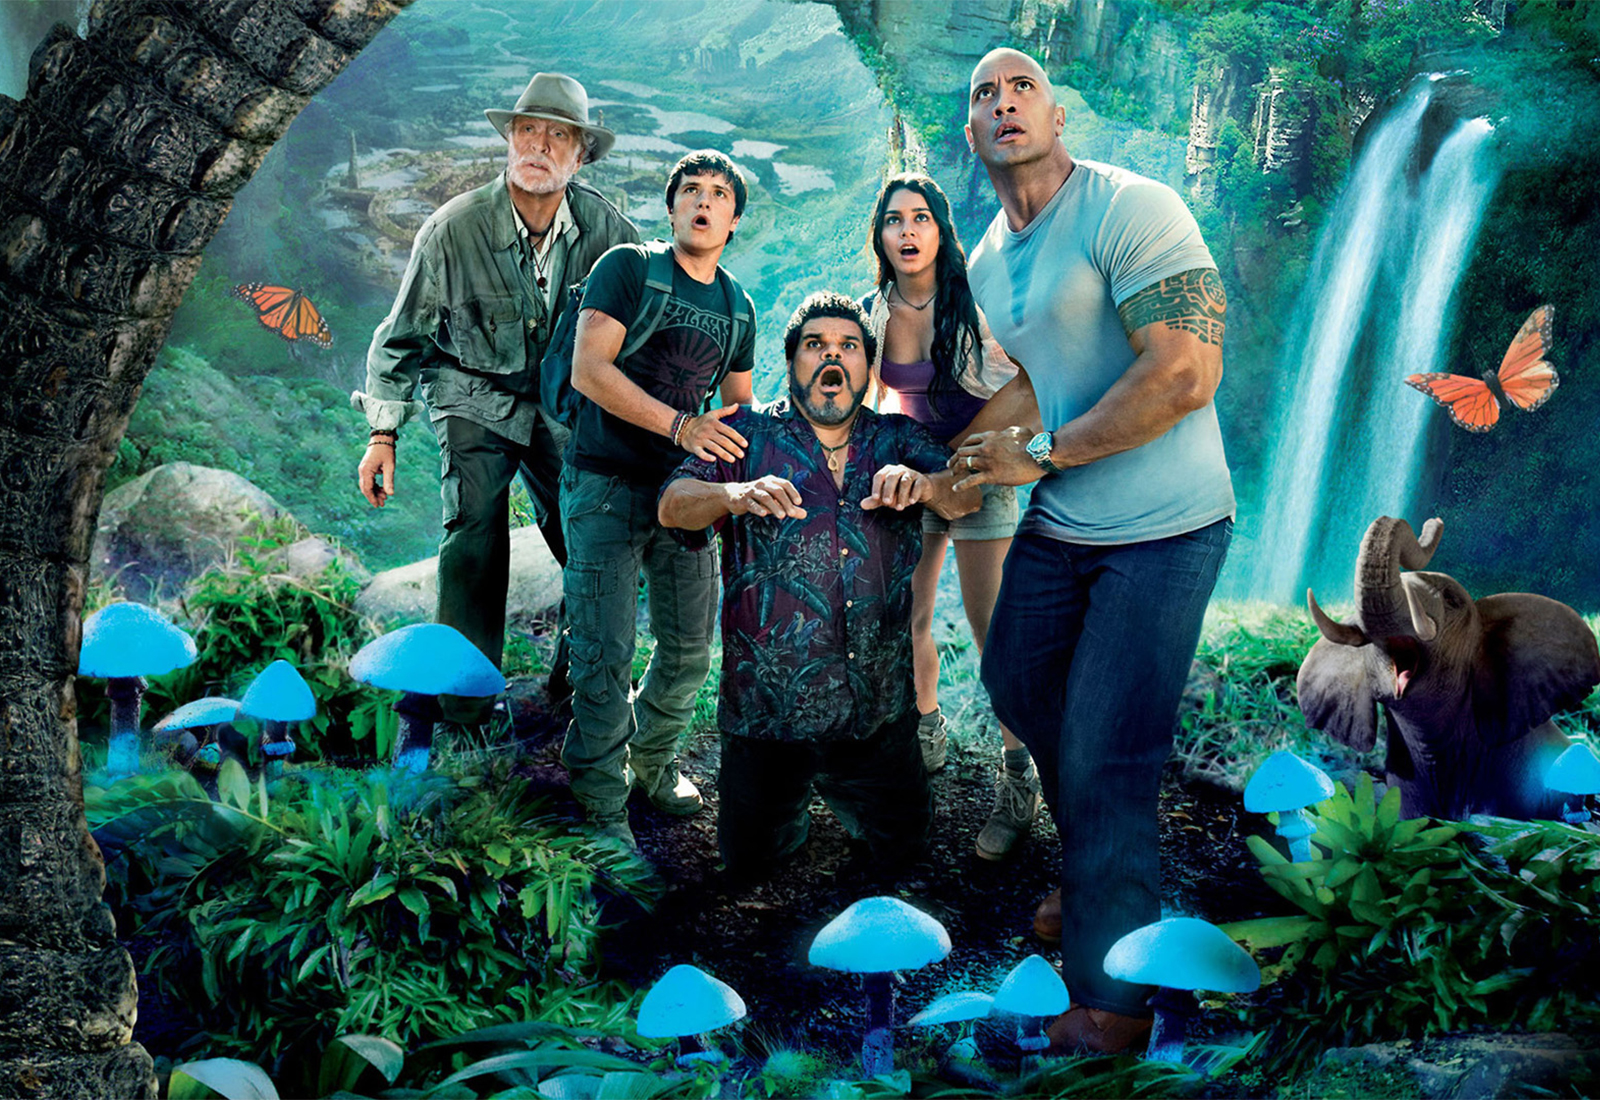 Journey 2 - The Mysterious Island